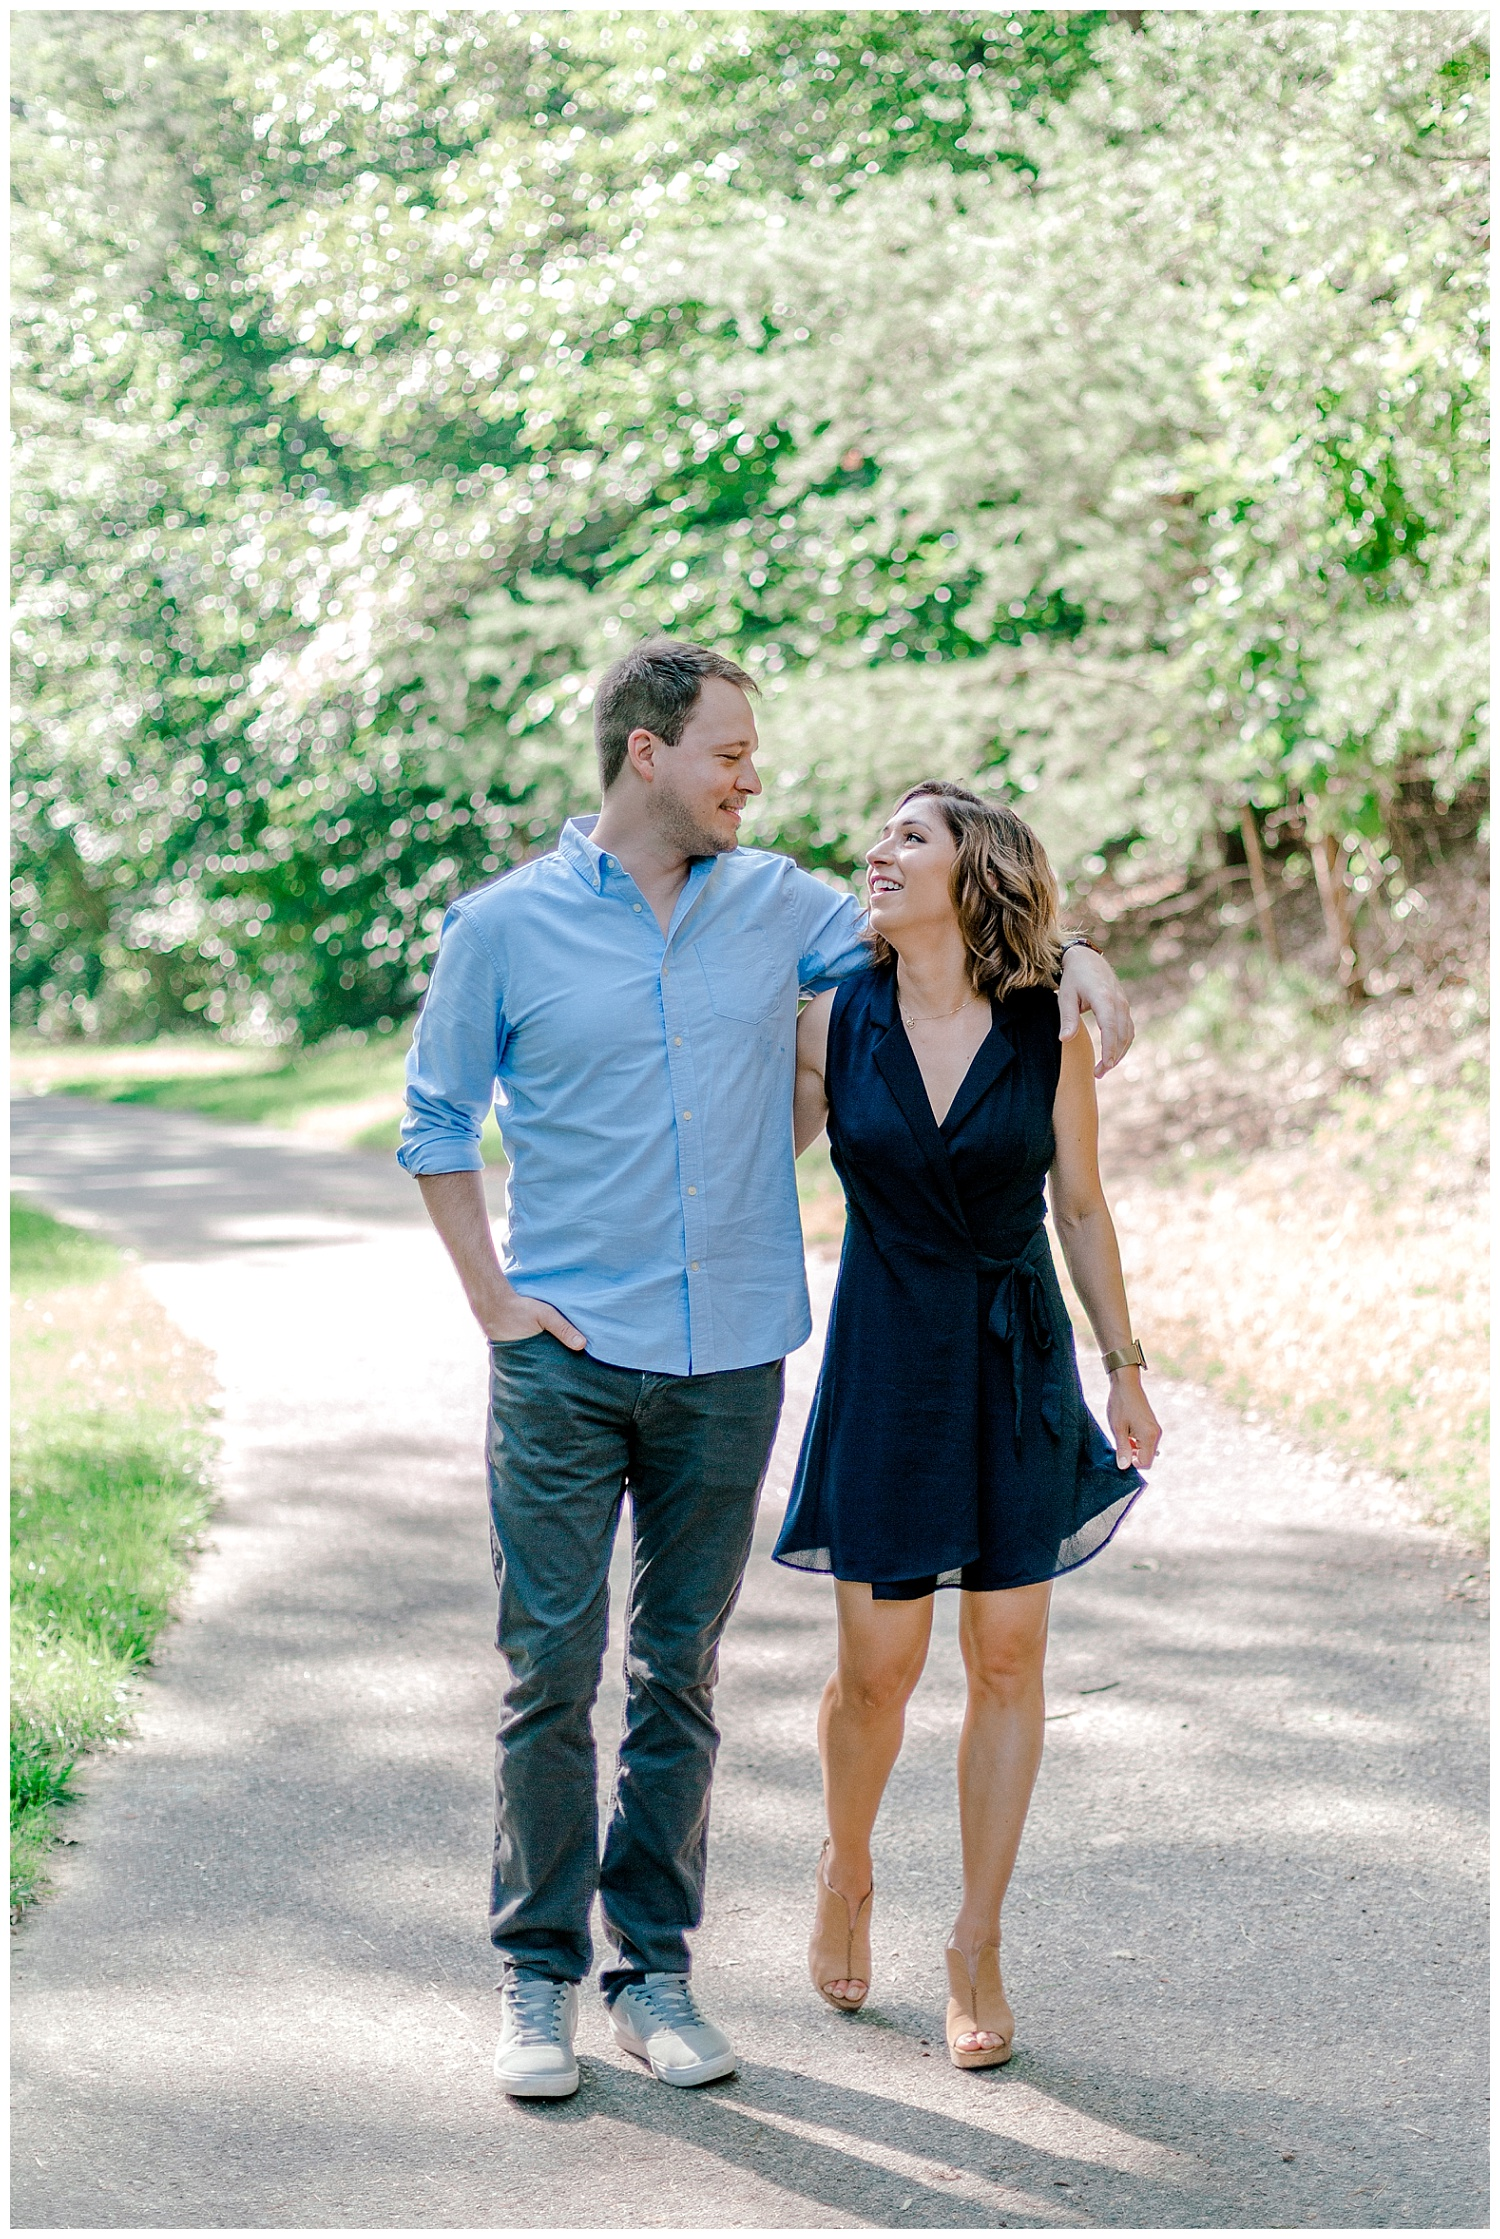 Wooded sunny Summertime engagement session in Odenton Maryland by Pennsylvania based wedding and lifestyle photographer Lytle photography_0007.jpg